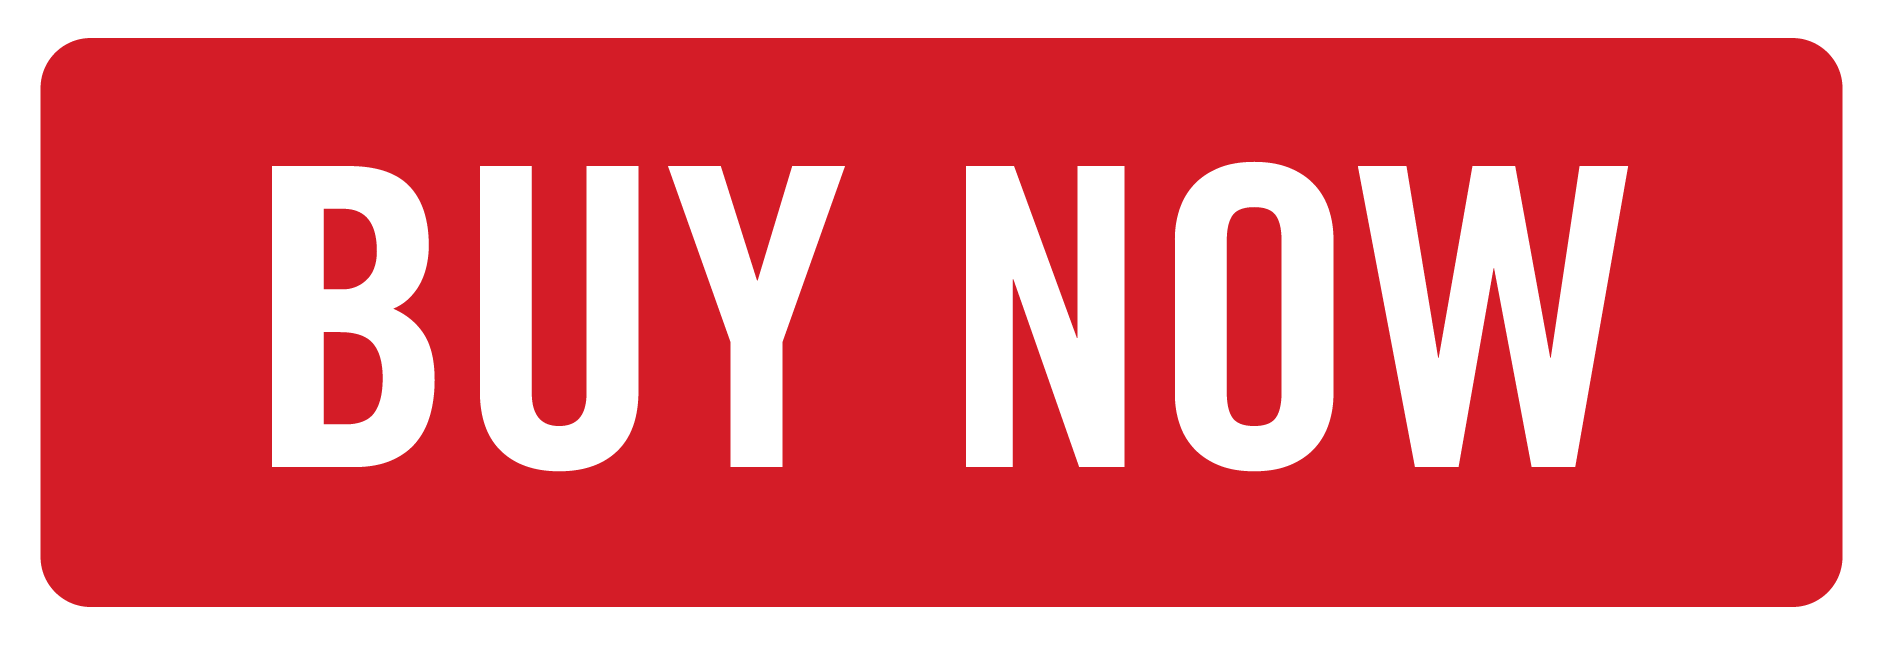 Image result for buynow button